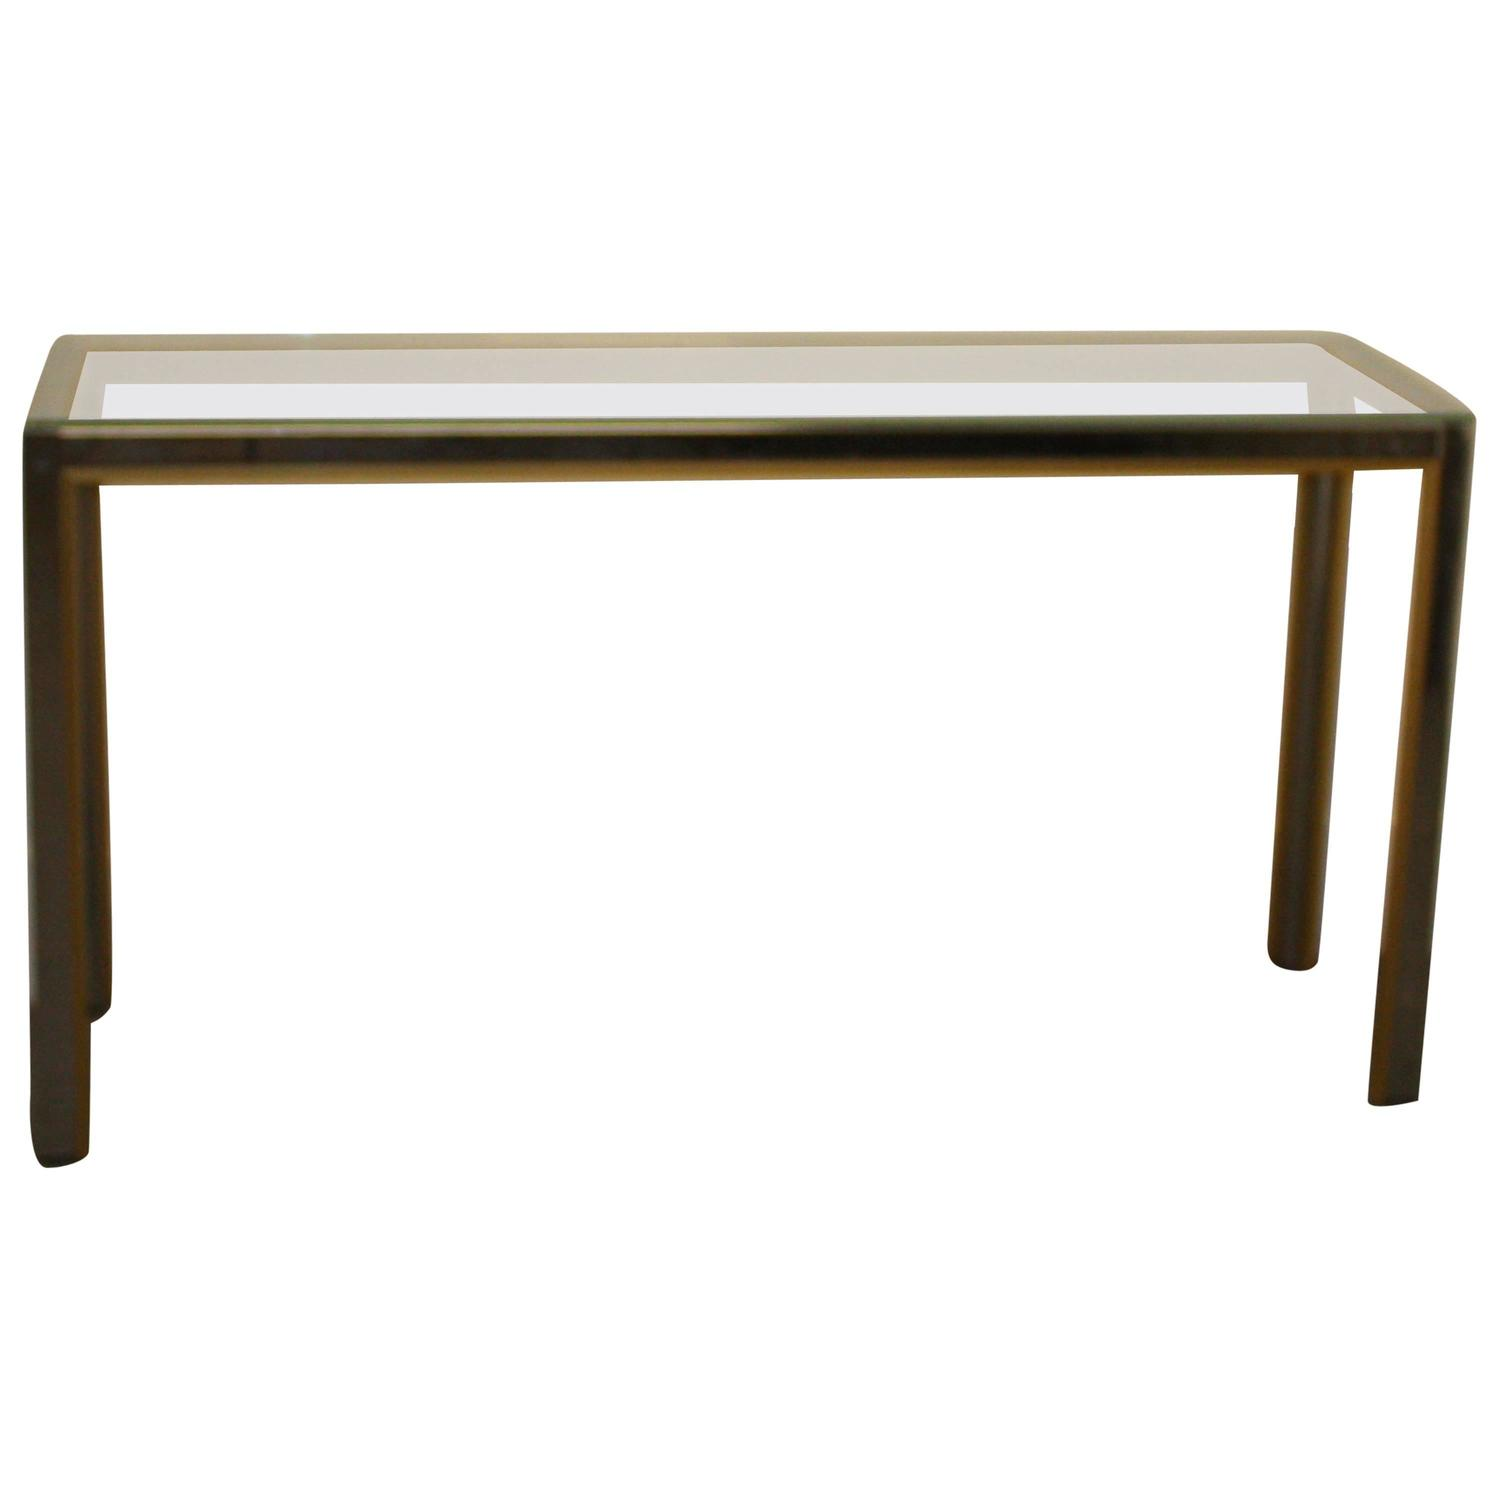 1970s italian console table in the style of willy rizzo at for Table willy rizzo